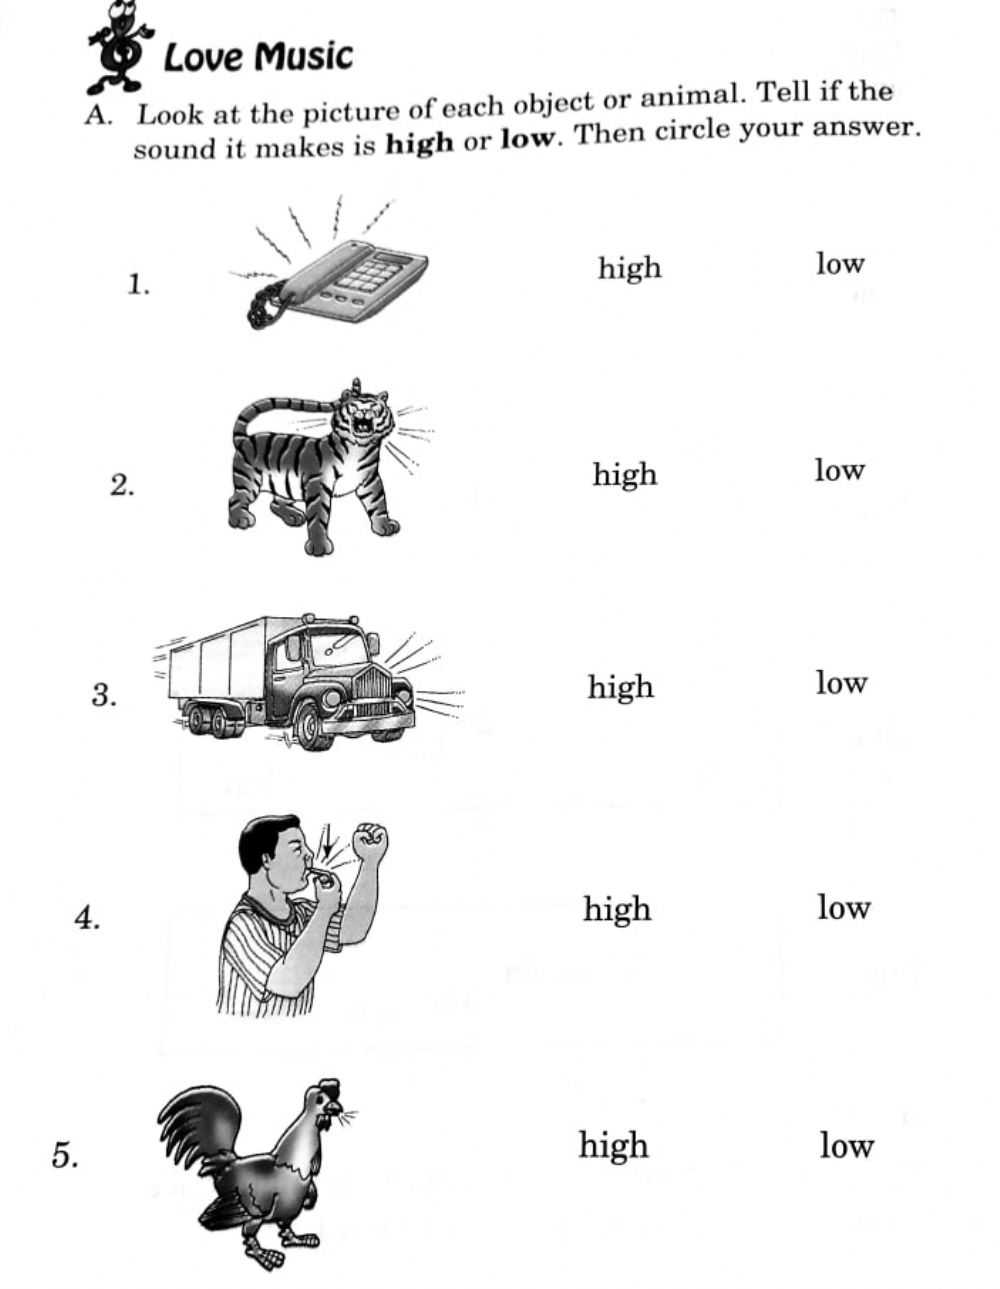 hight resolution of Sounds interactive exercise for grade 2